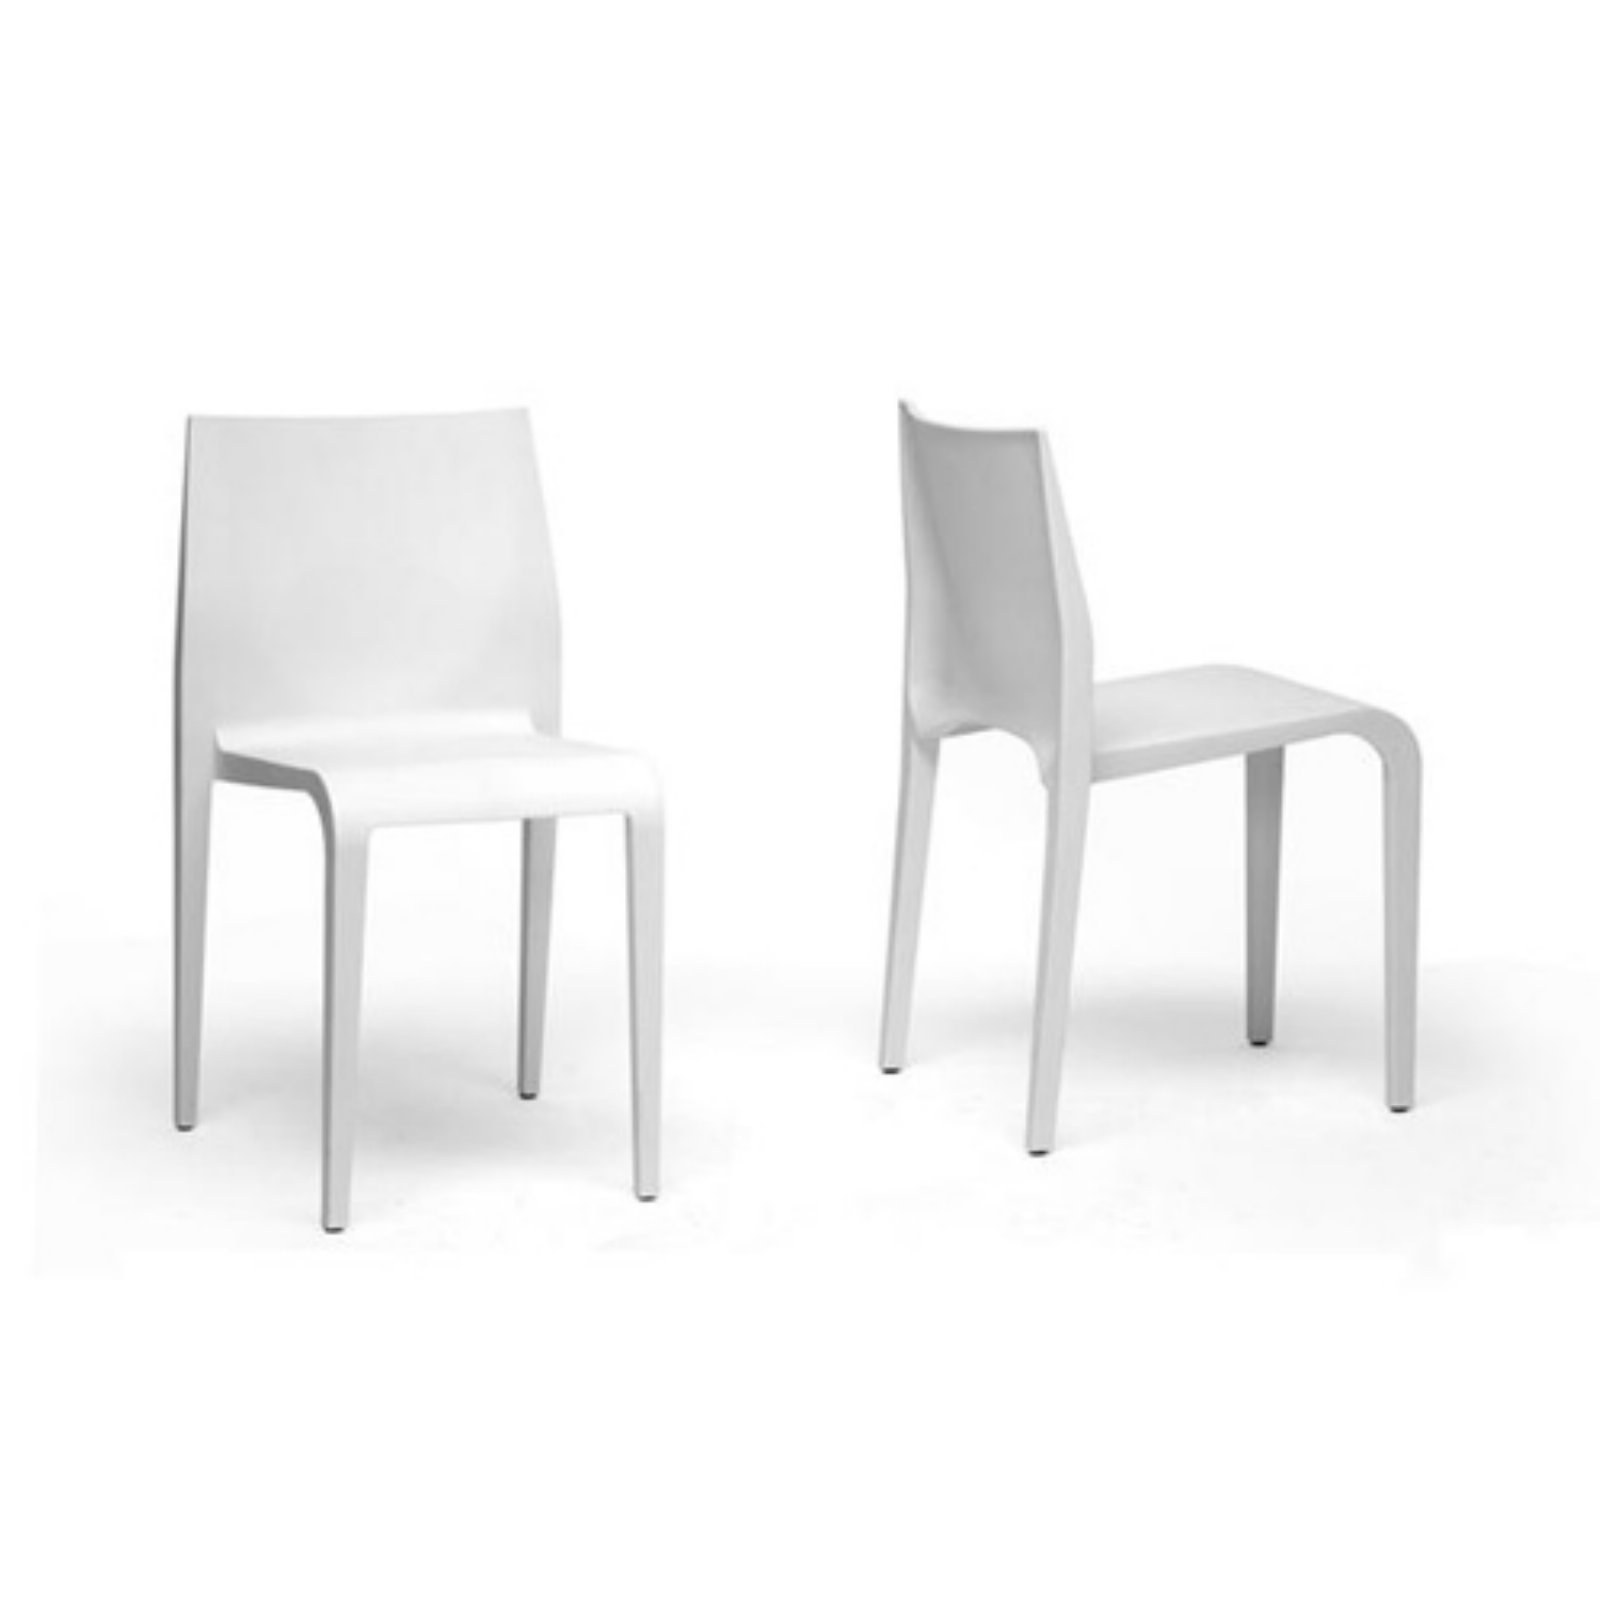 white plastic dining chairs bedroom dressing table chair baxton studio blanche stackable molded